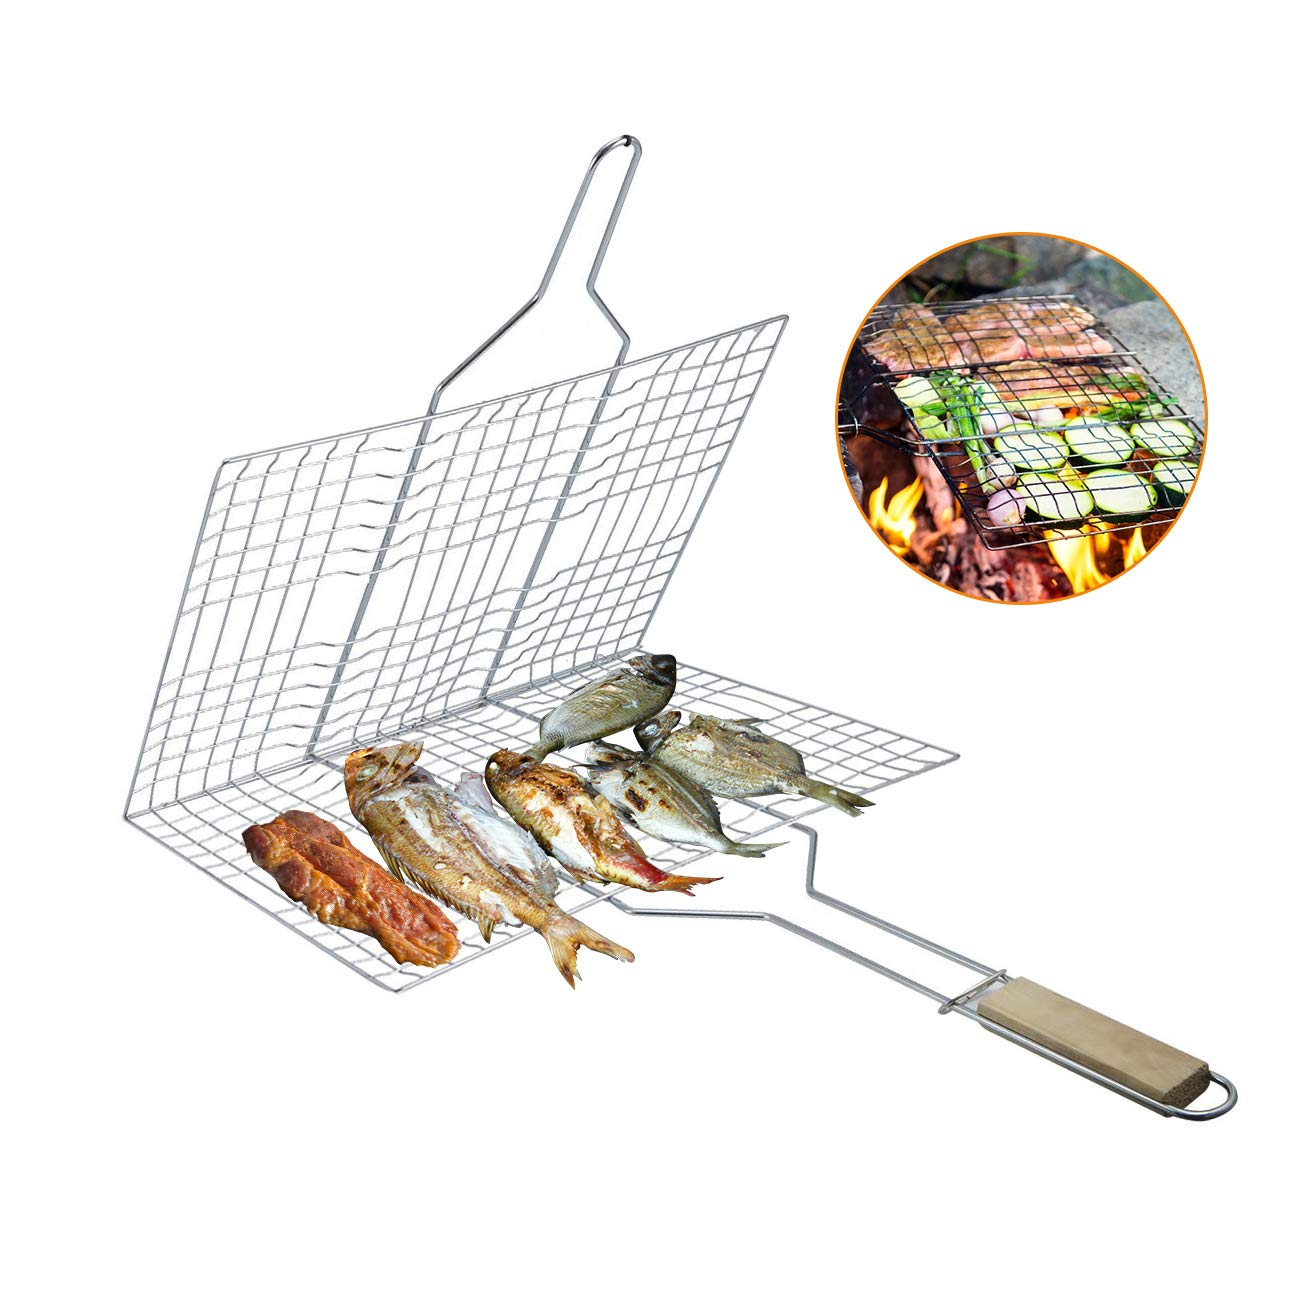 BEAMNOVA Large 13x8 Barbeque Grill Basket with Handle Stainless Steel Mesh Portable for Outdoor Camping Vegetables Burgers Fish Shrimp Steaks